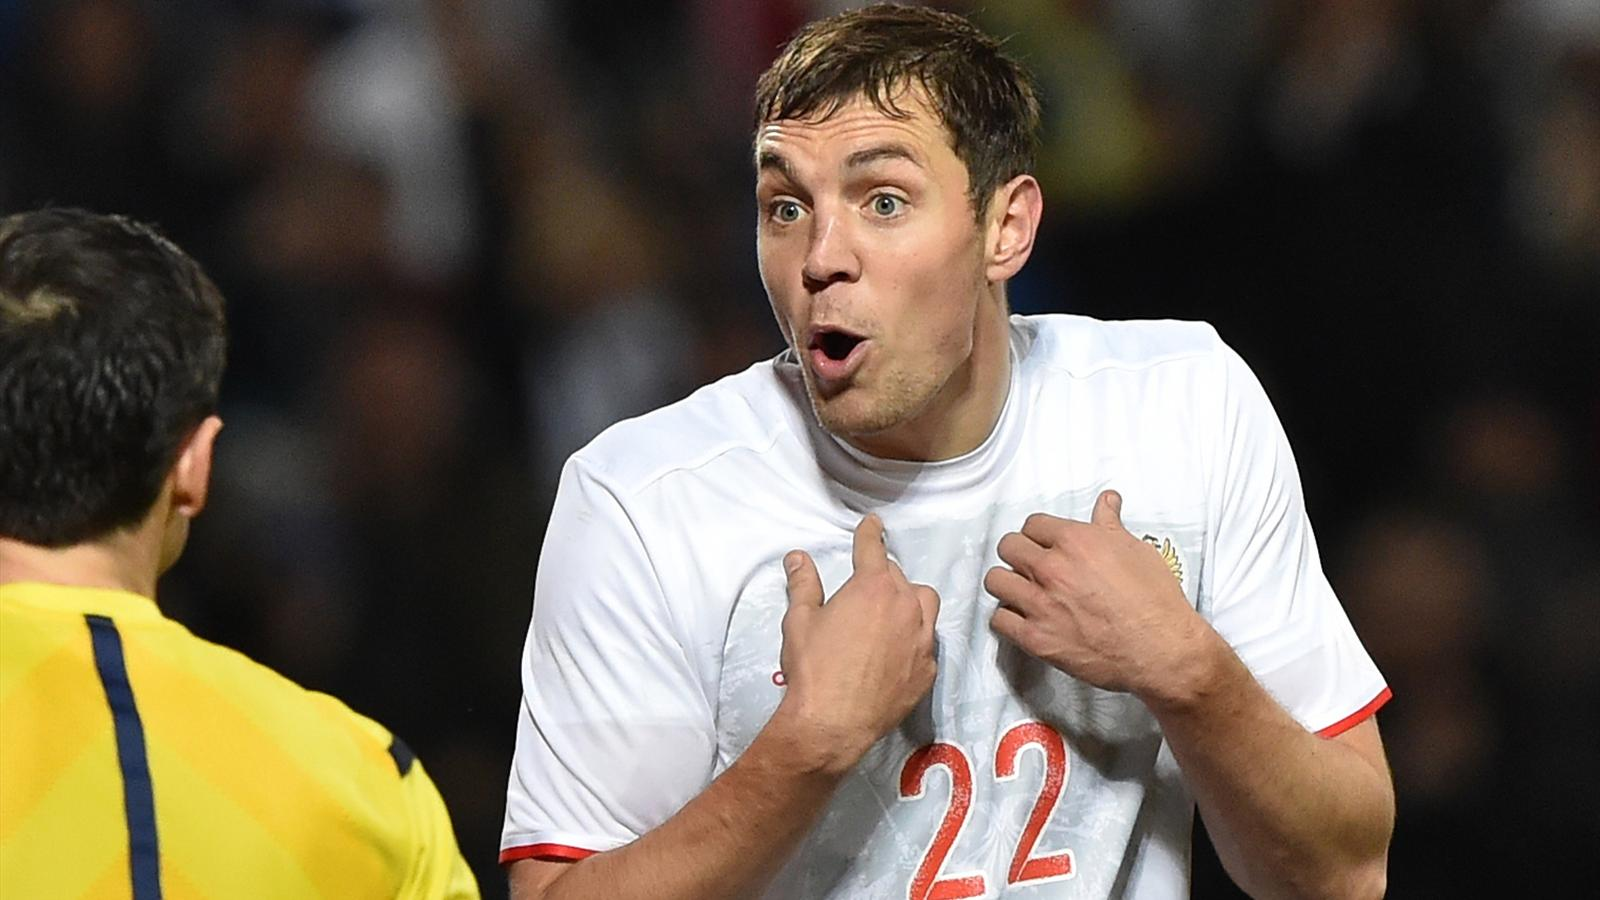 Russia's forward Artem Dzyuba argues with a referee during the friendly football match between Russia and Portugal in Krasnodar on November 14, 2015